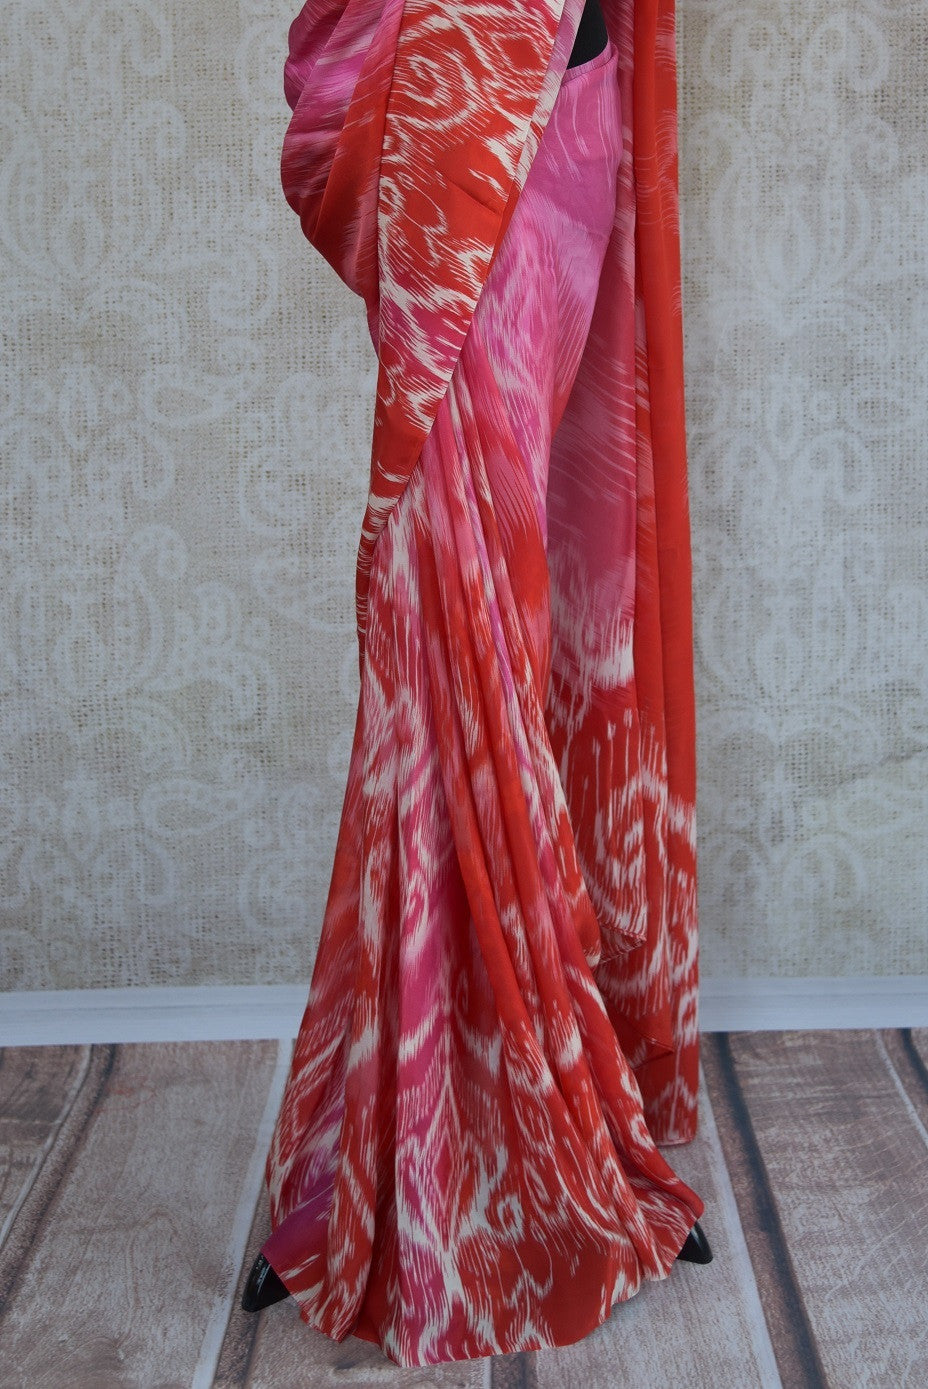 90C177 Lovely pink, red and white printed saree available at our Indian wear store online in USA. The crepe silk saree is ideal for pujas and festive occasions. This charming Indian outfit is sure to have you looking delightful!